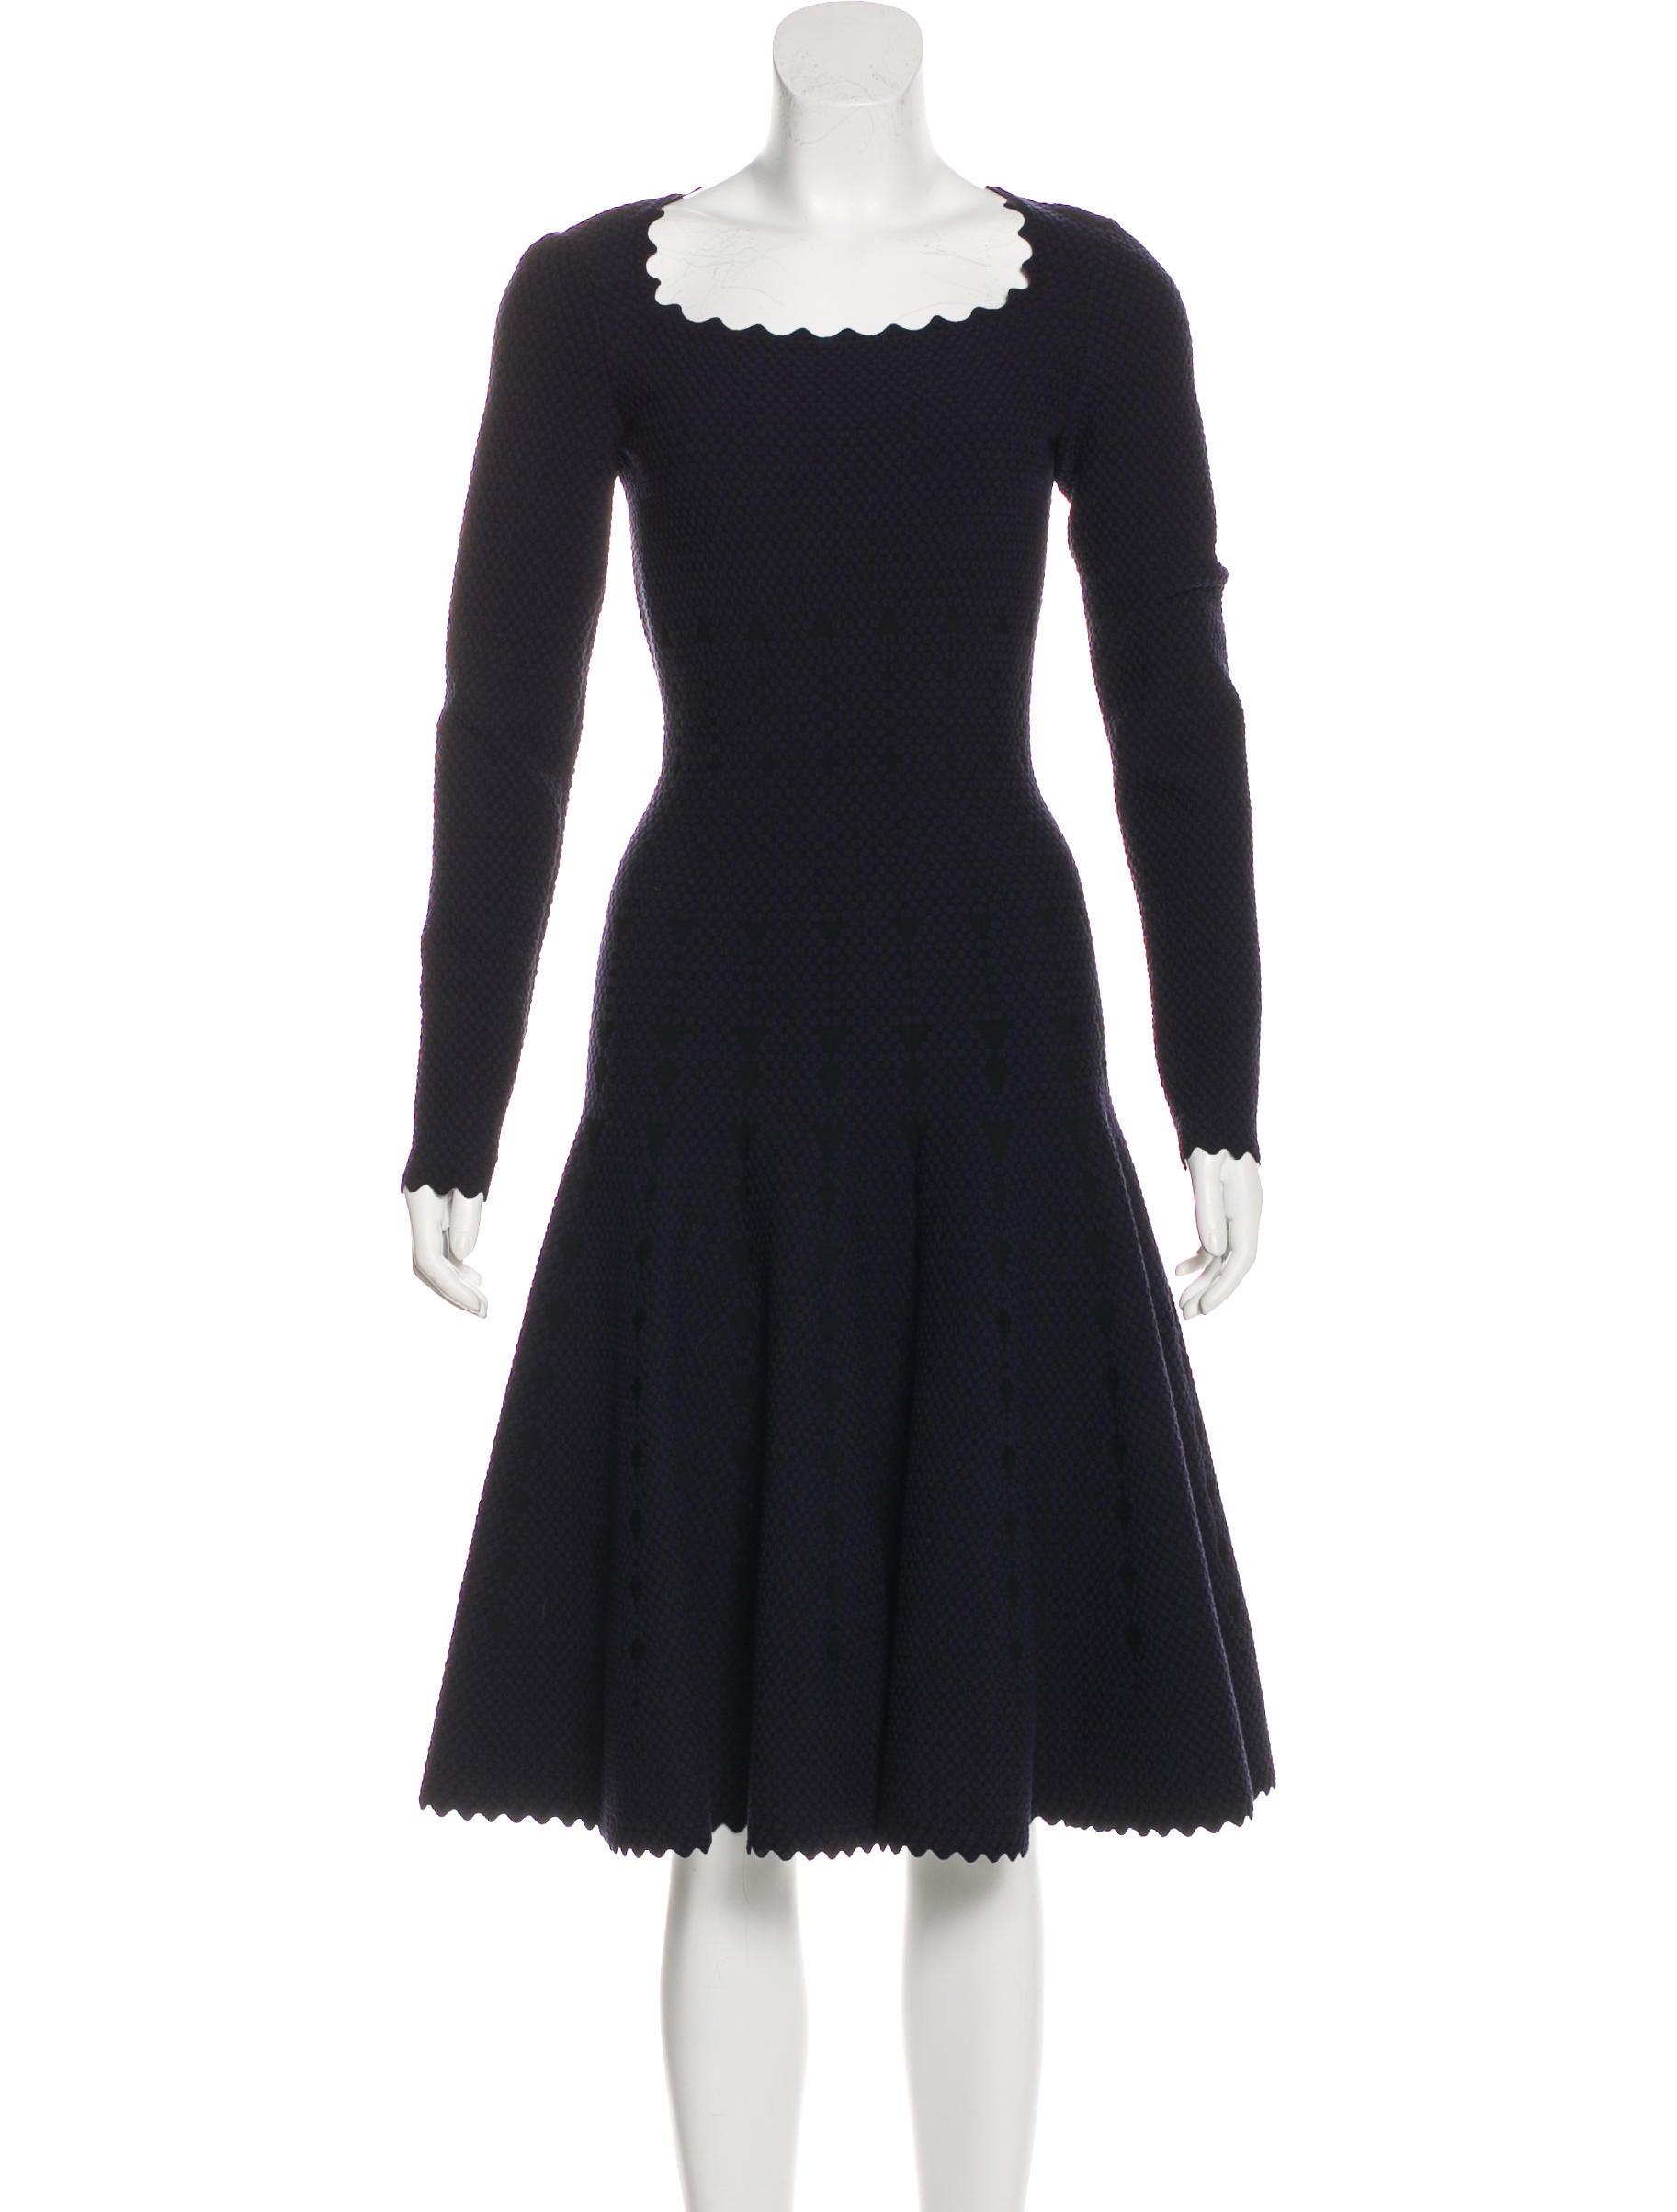 Discount Authentic Online Alaïa Fit & Flare Wool-Blend Dress w/ Tags Outlet Many Kinds Of Buy Cheap Pictures H9Uk8E